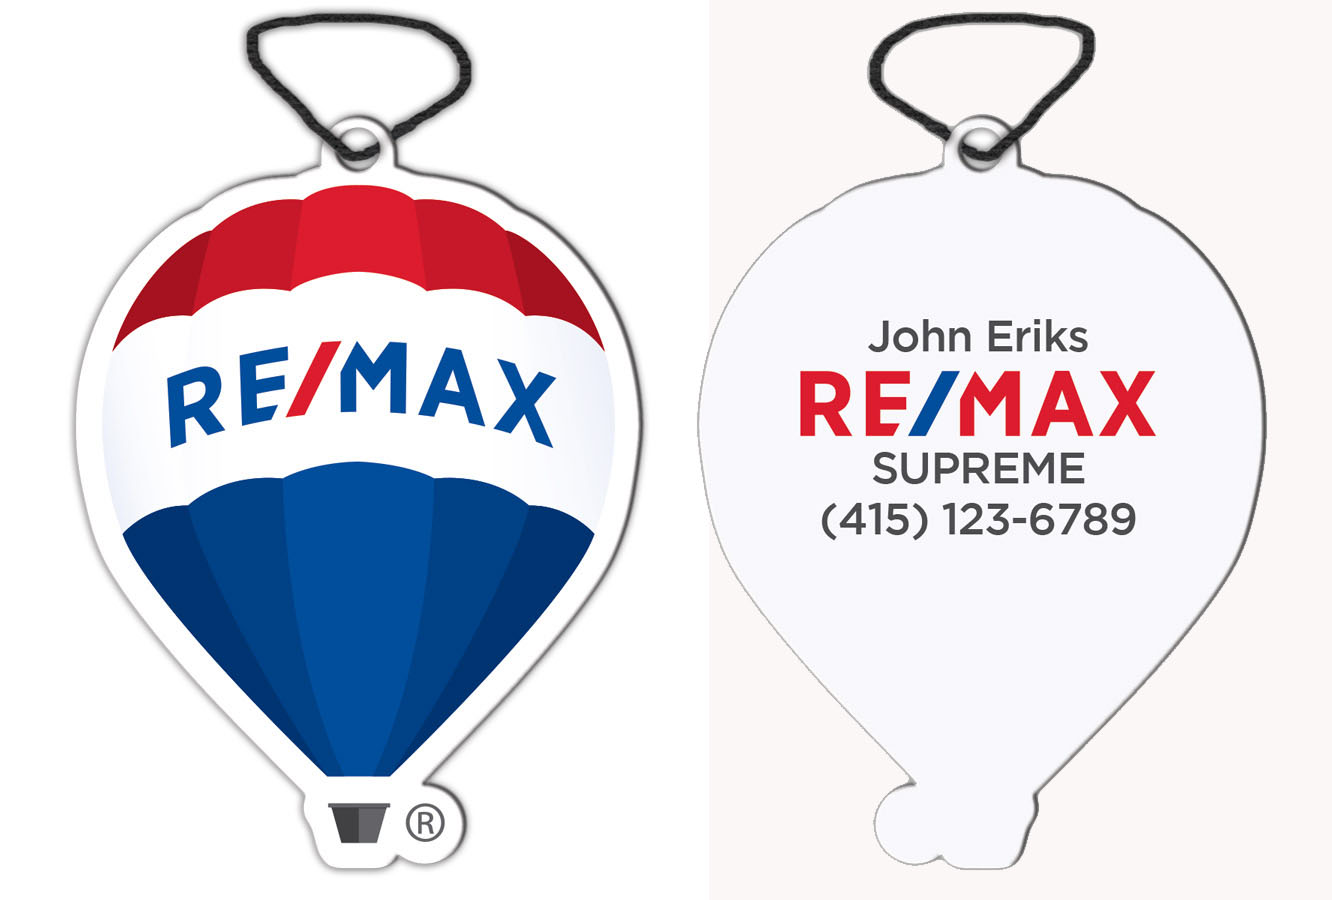 RE/MAX Balloon Air Refreshner - Personalized